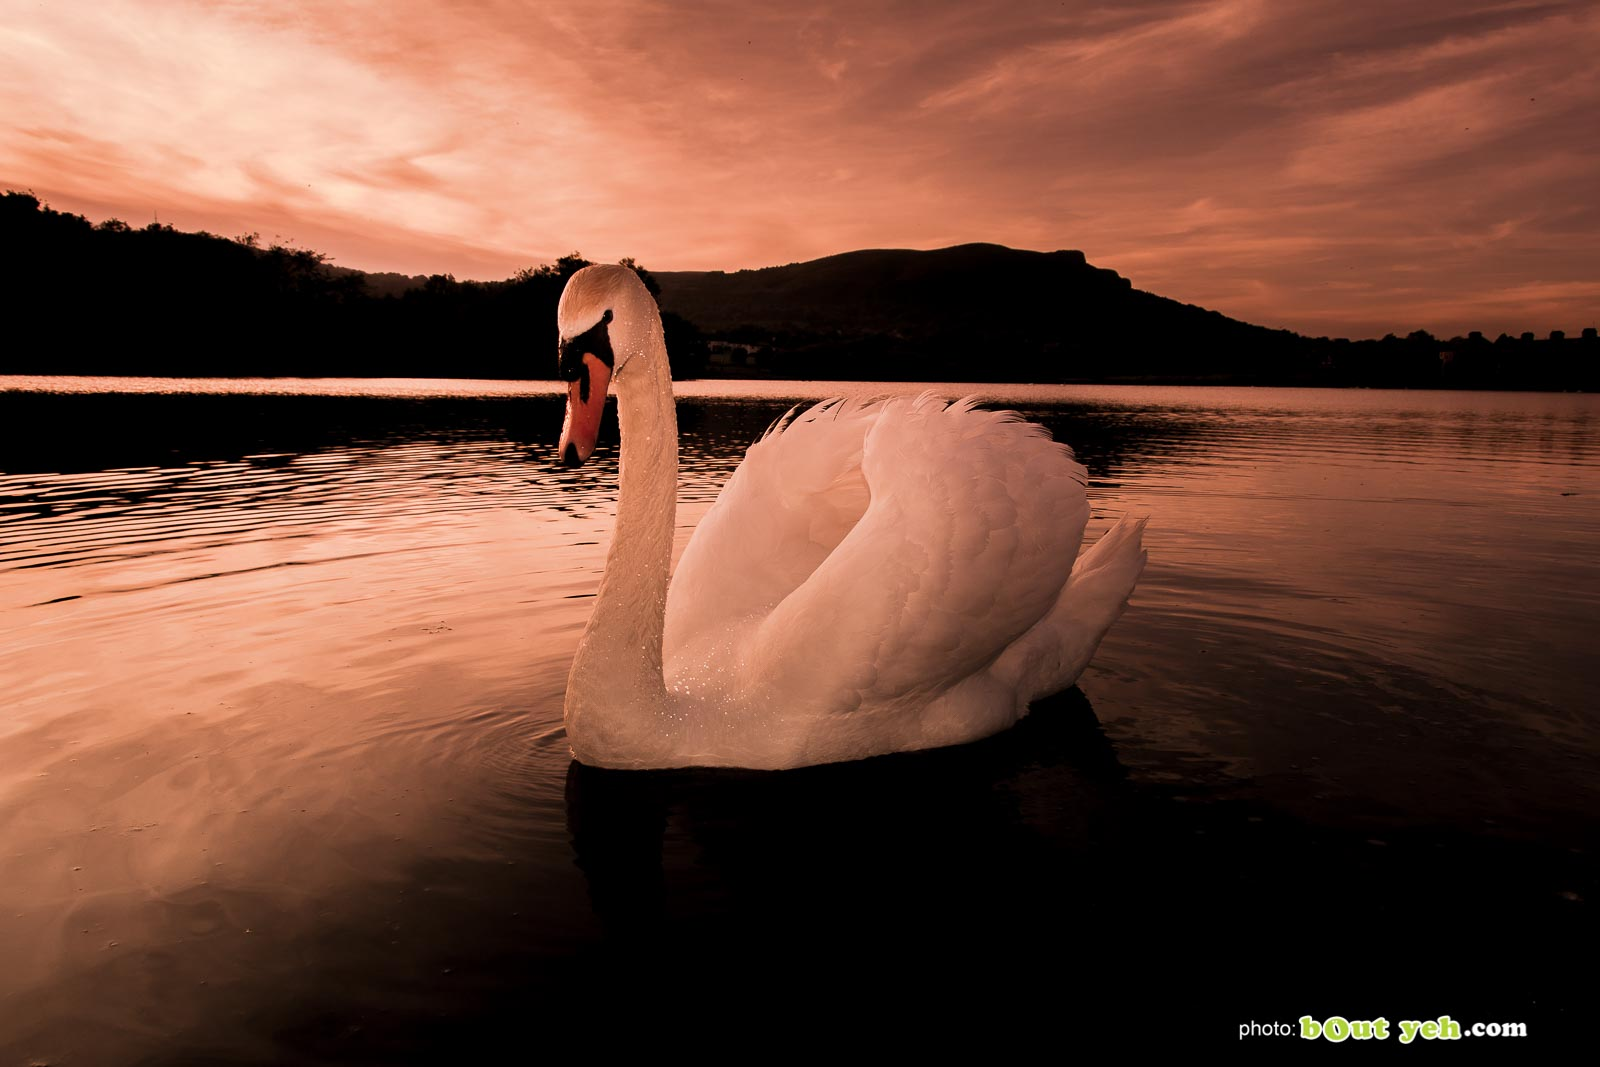 Swan on water at sunset at The Waterworks Belfast, Northern Ireland, photo 1299